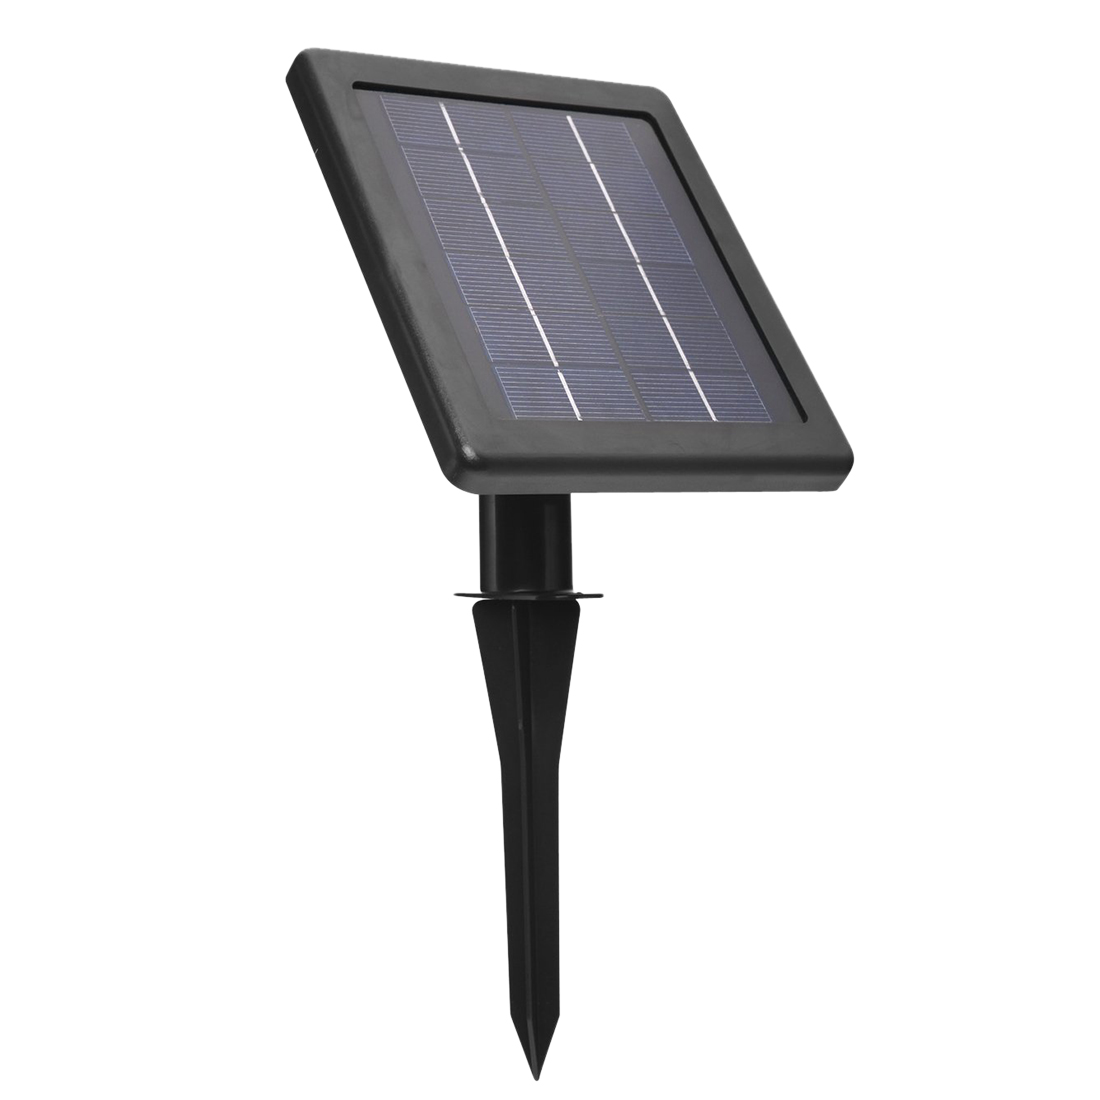 Rechargeable Waterproof Solar Powered 30 LED Spot Light White Lamp with Lithium Battery Inside for Lawn, Garden, Road, Hotel. youoklight 0 5w 3 led white light mini waterproof solar powered fence garden lamp black